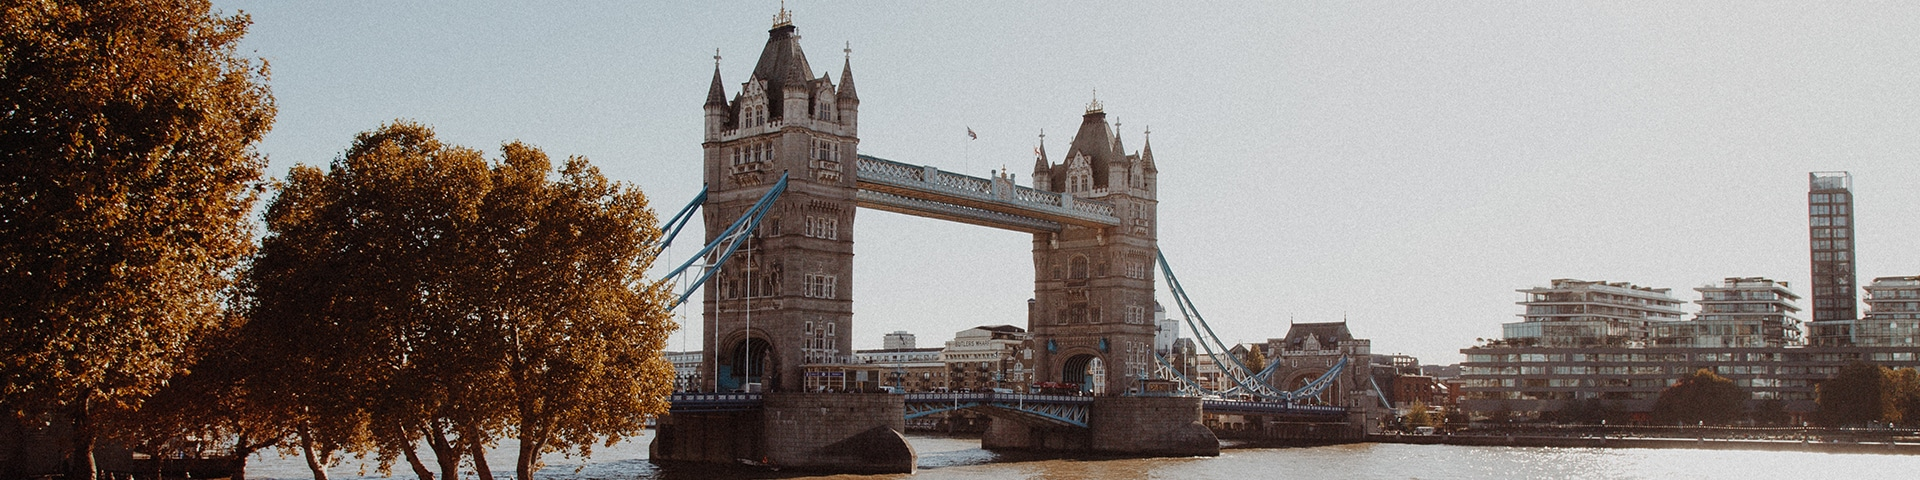 Best walks in London, UK include the walk from Greenwich to The Tower via Canary Wharf and the Thames